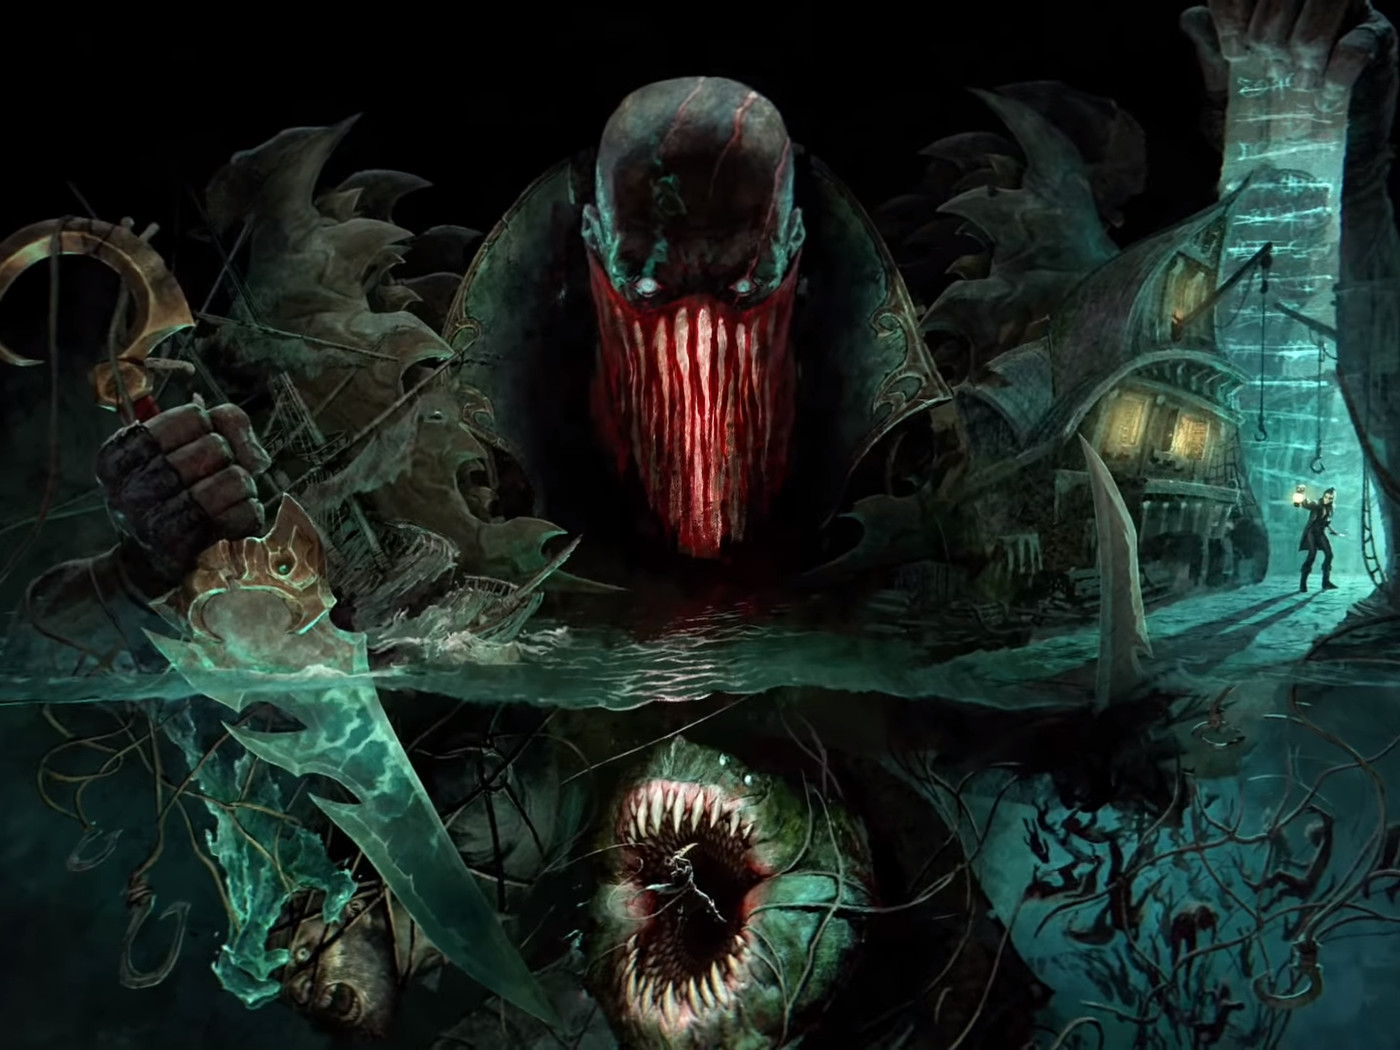 Pyke League Of Legends Newest Champion Teased In Spooky Video The Rift Herald